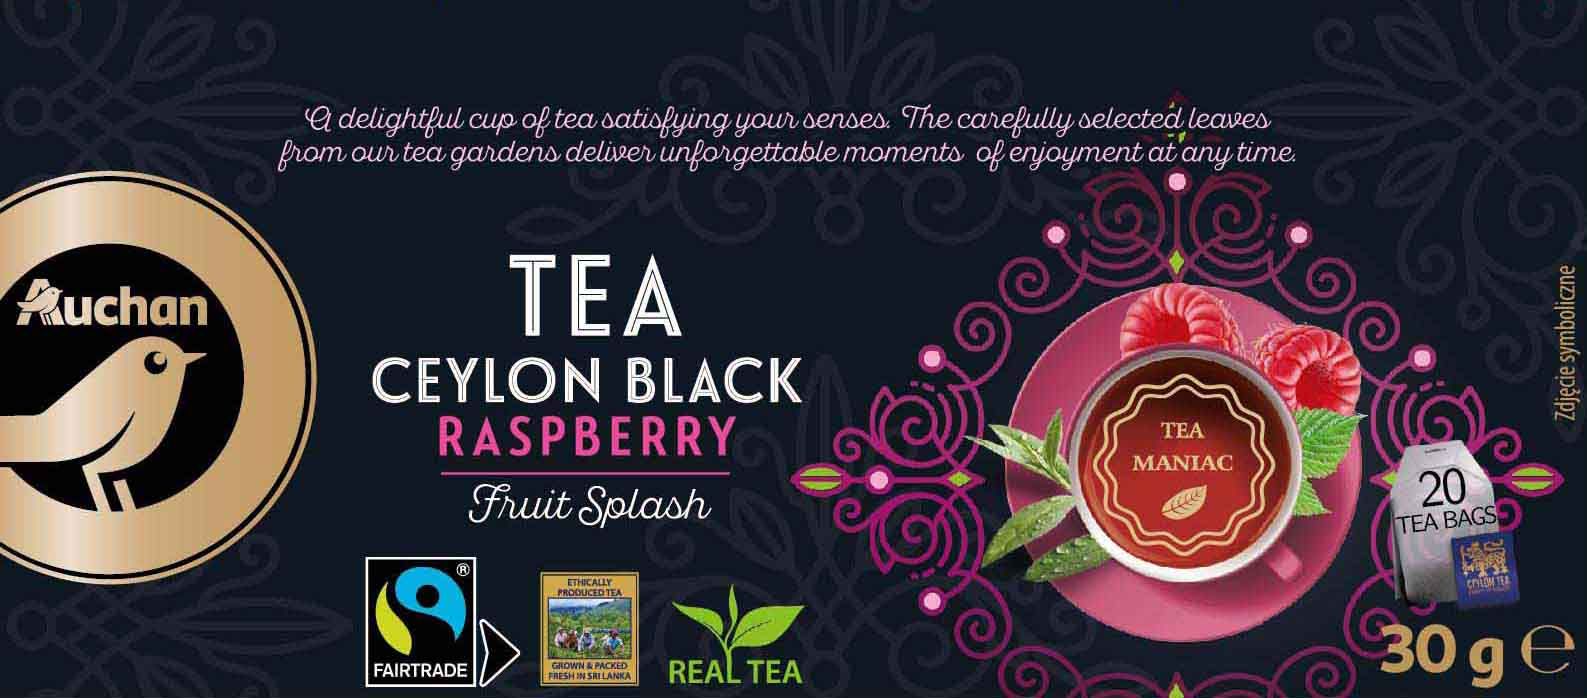 Tea Ceylon Black Raspberry